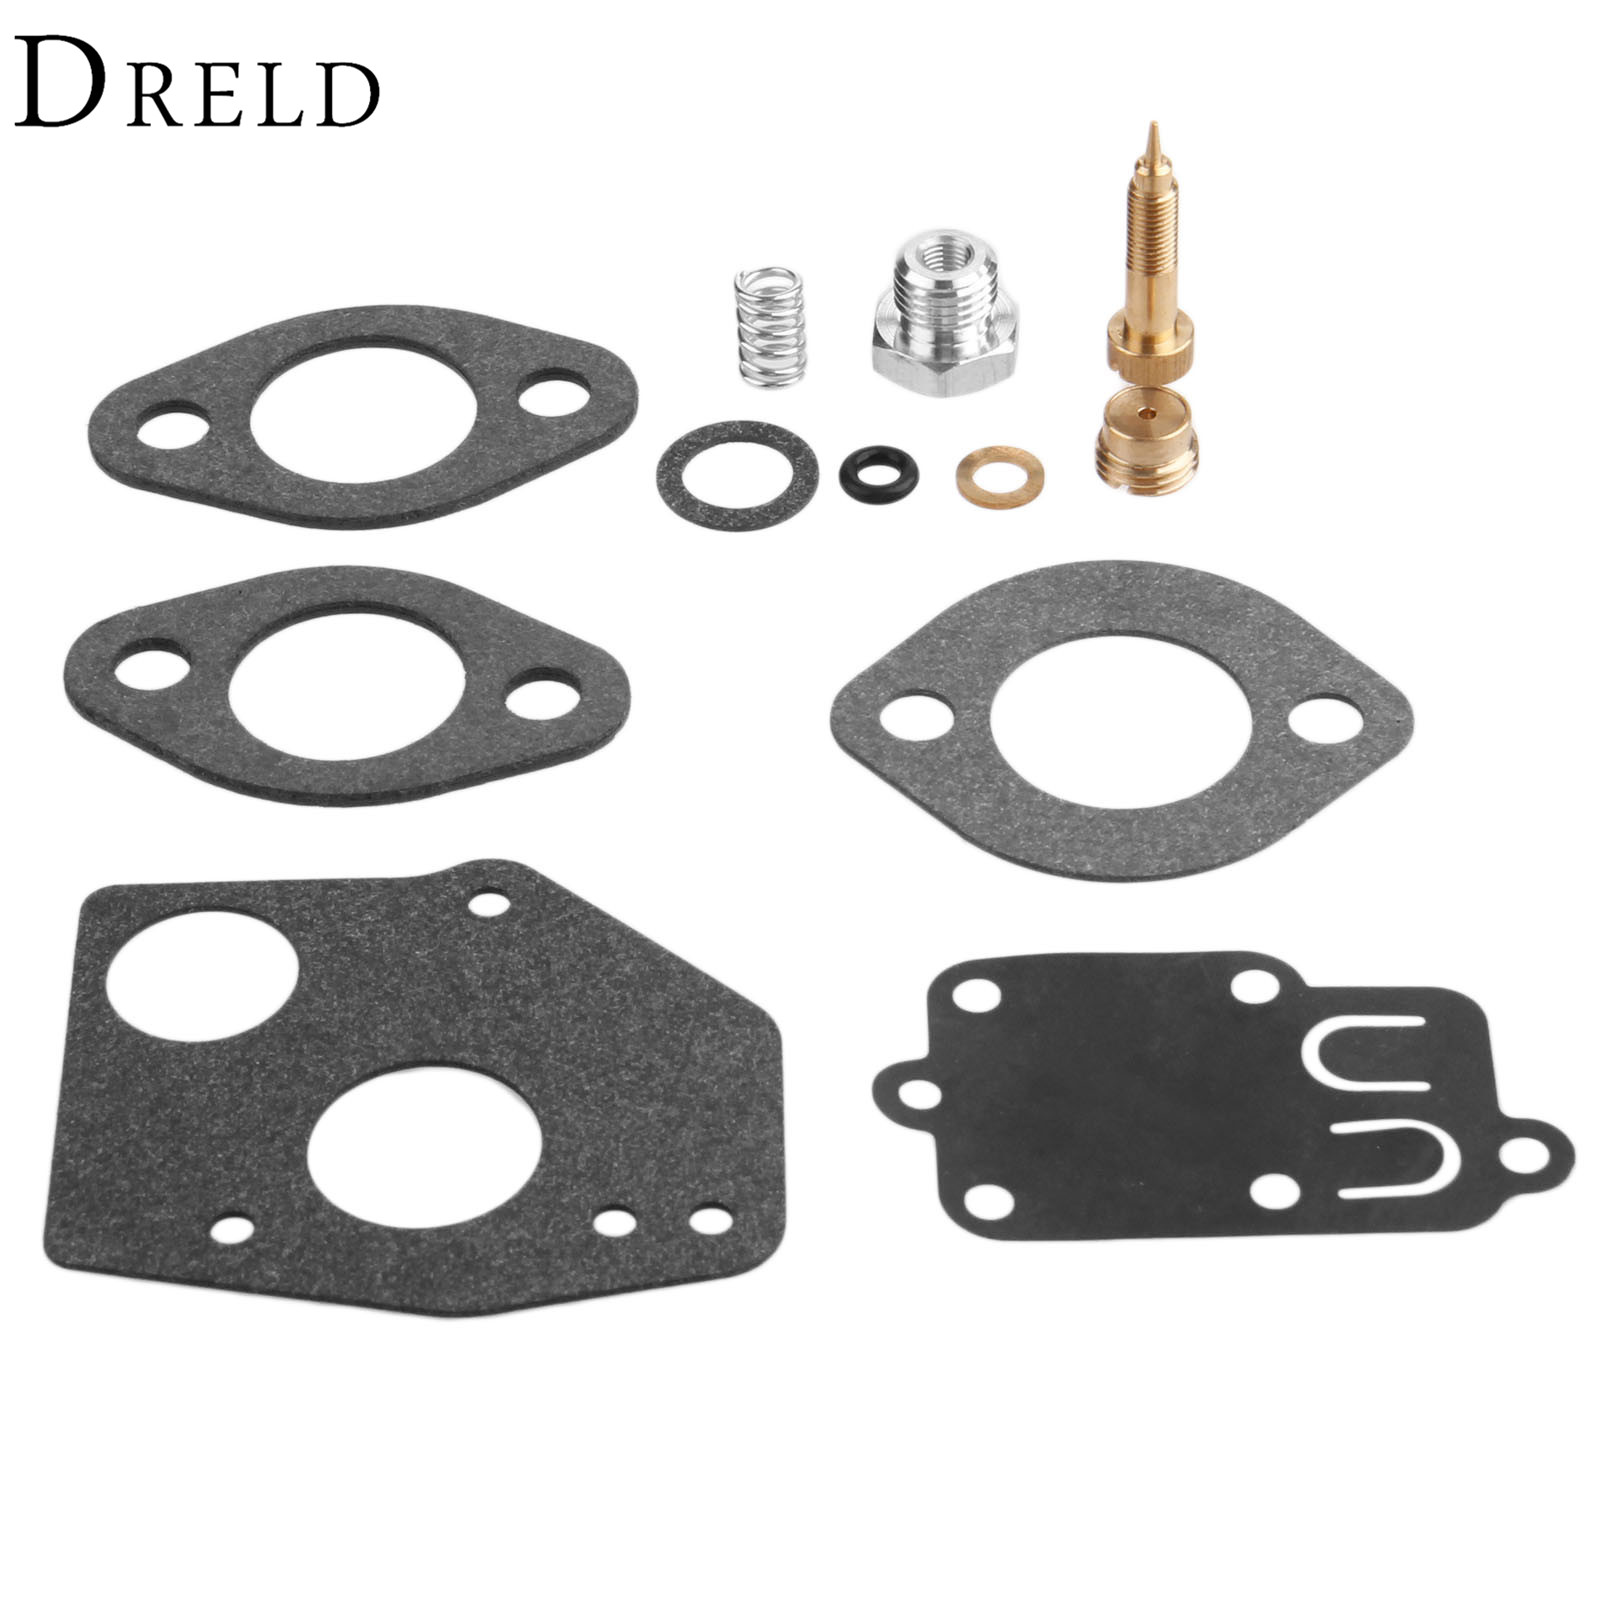 DRELD Carburetor Carb Repair Overhaul Kit for BRIGGS & STRATTON 80200 81200 82200 133200 135200 92200 93200 136200 100200 111200 цены онлайн